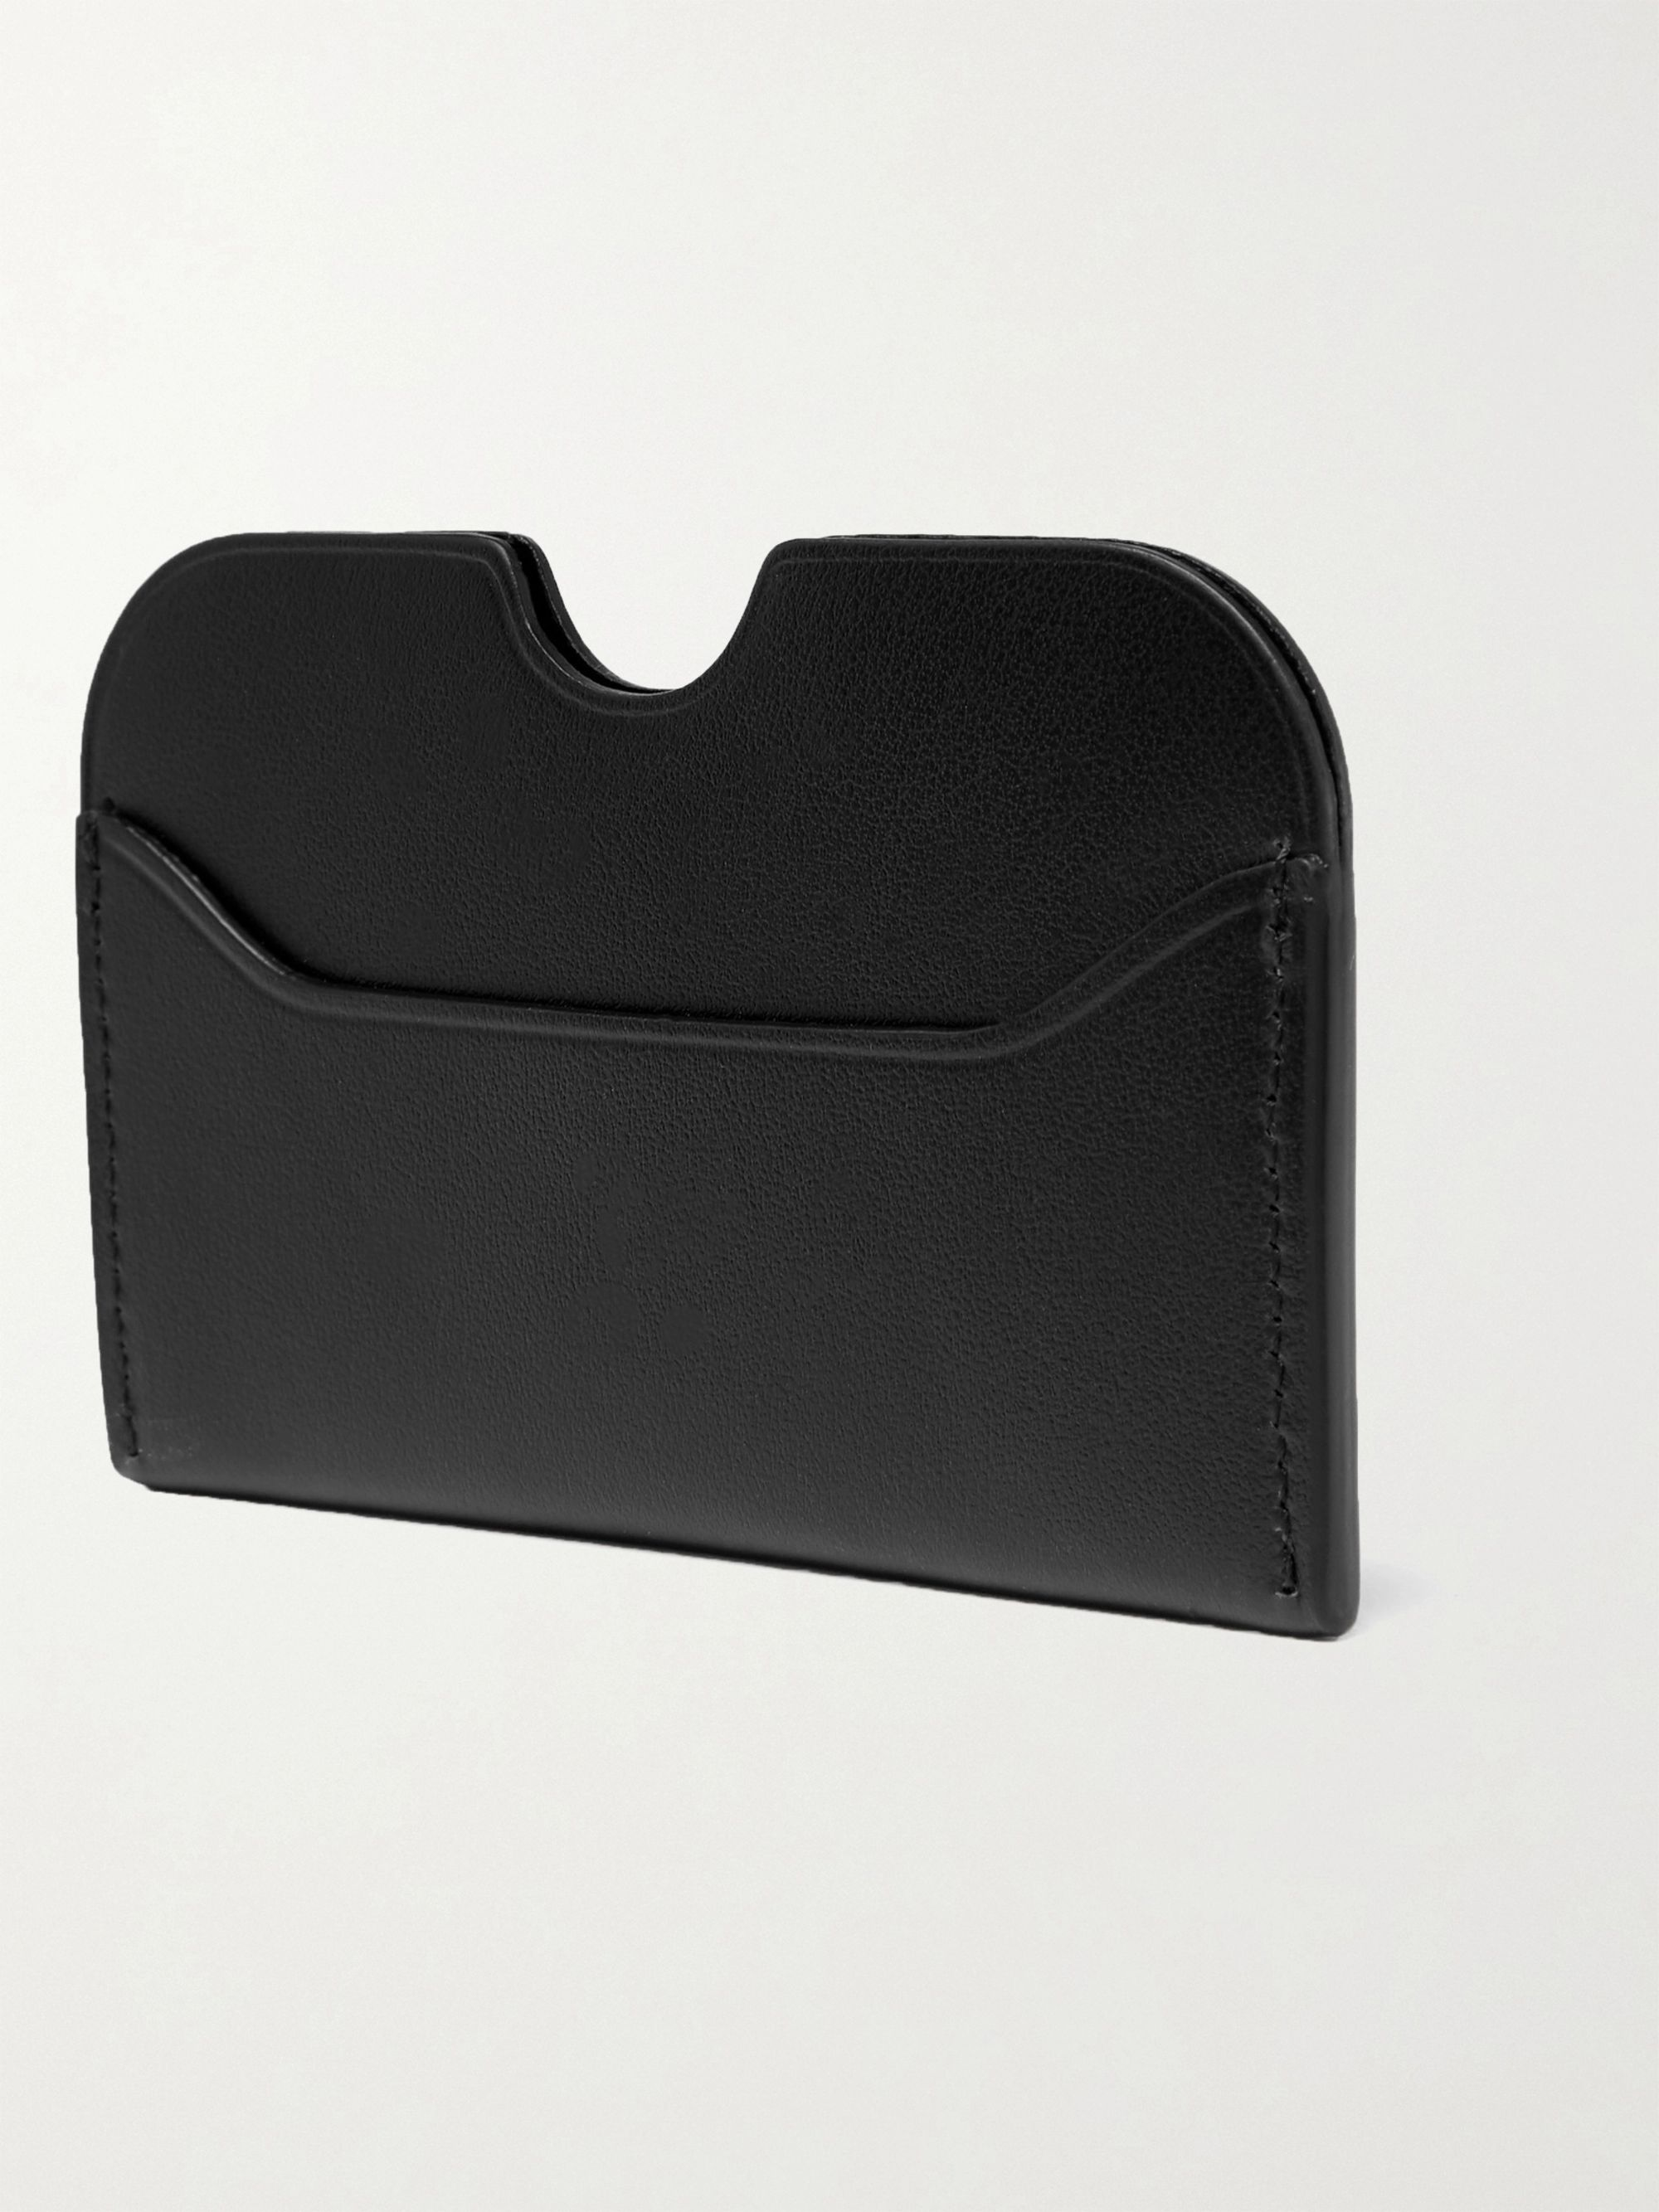 Acne Studios Elmas leather cardholder